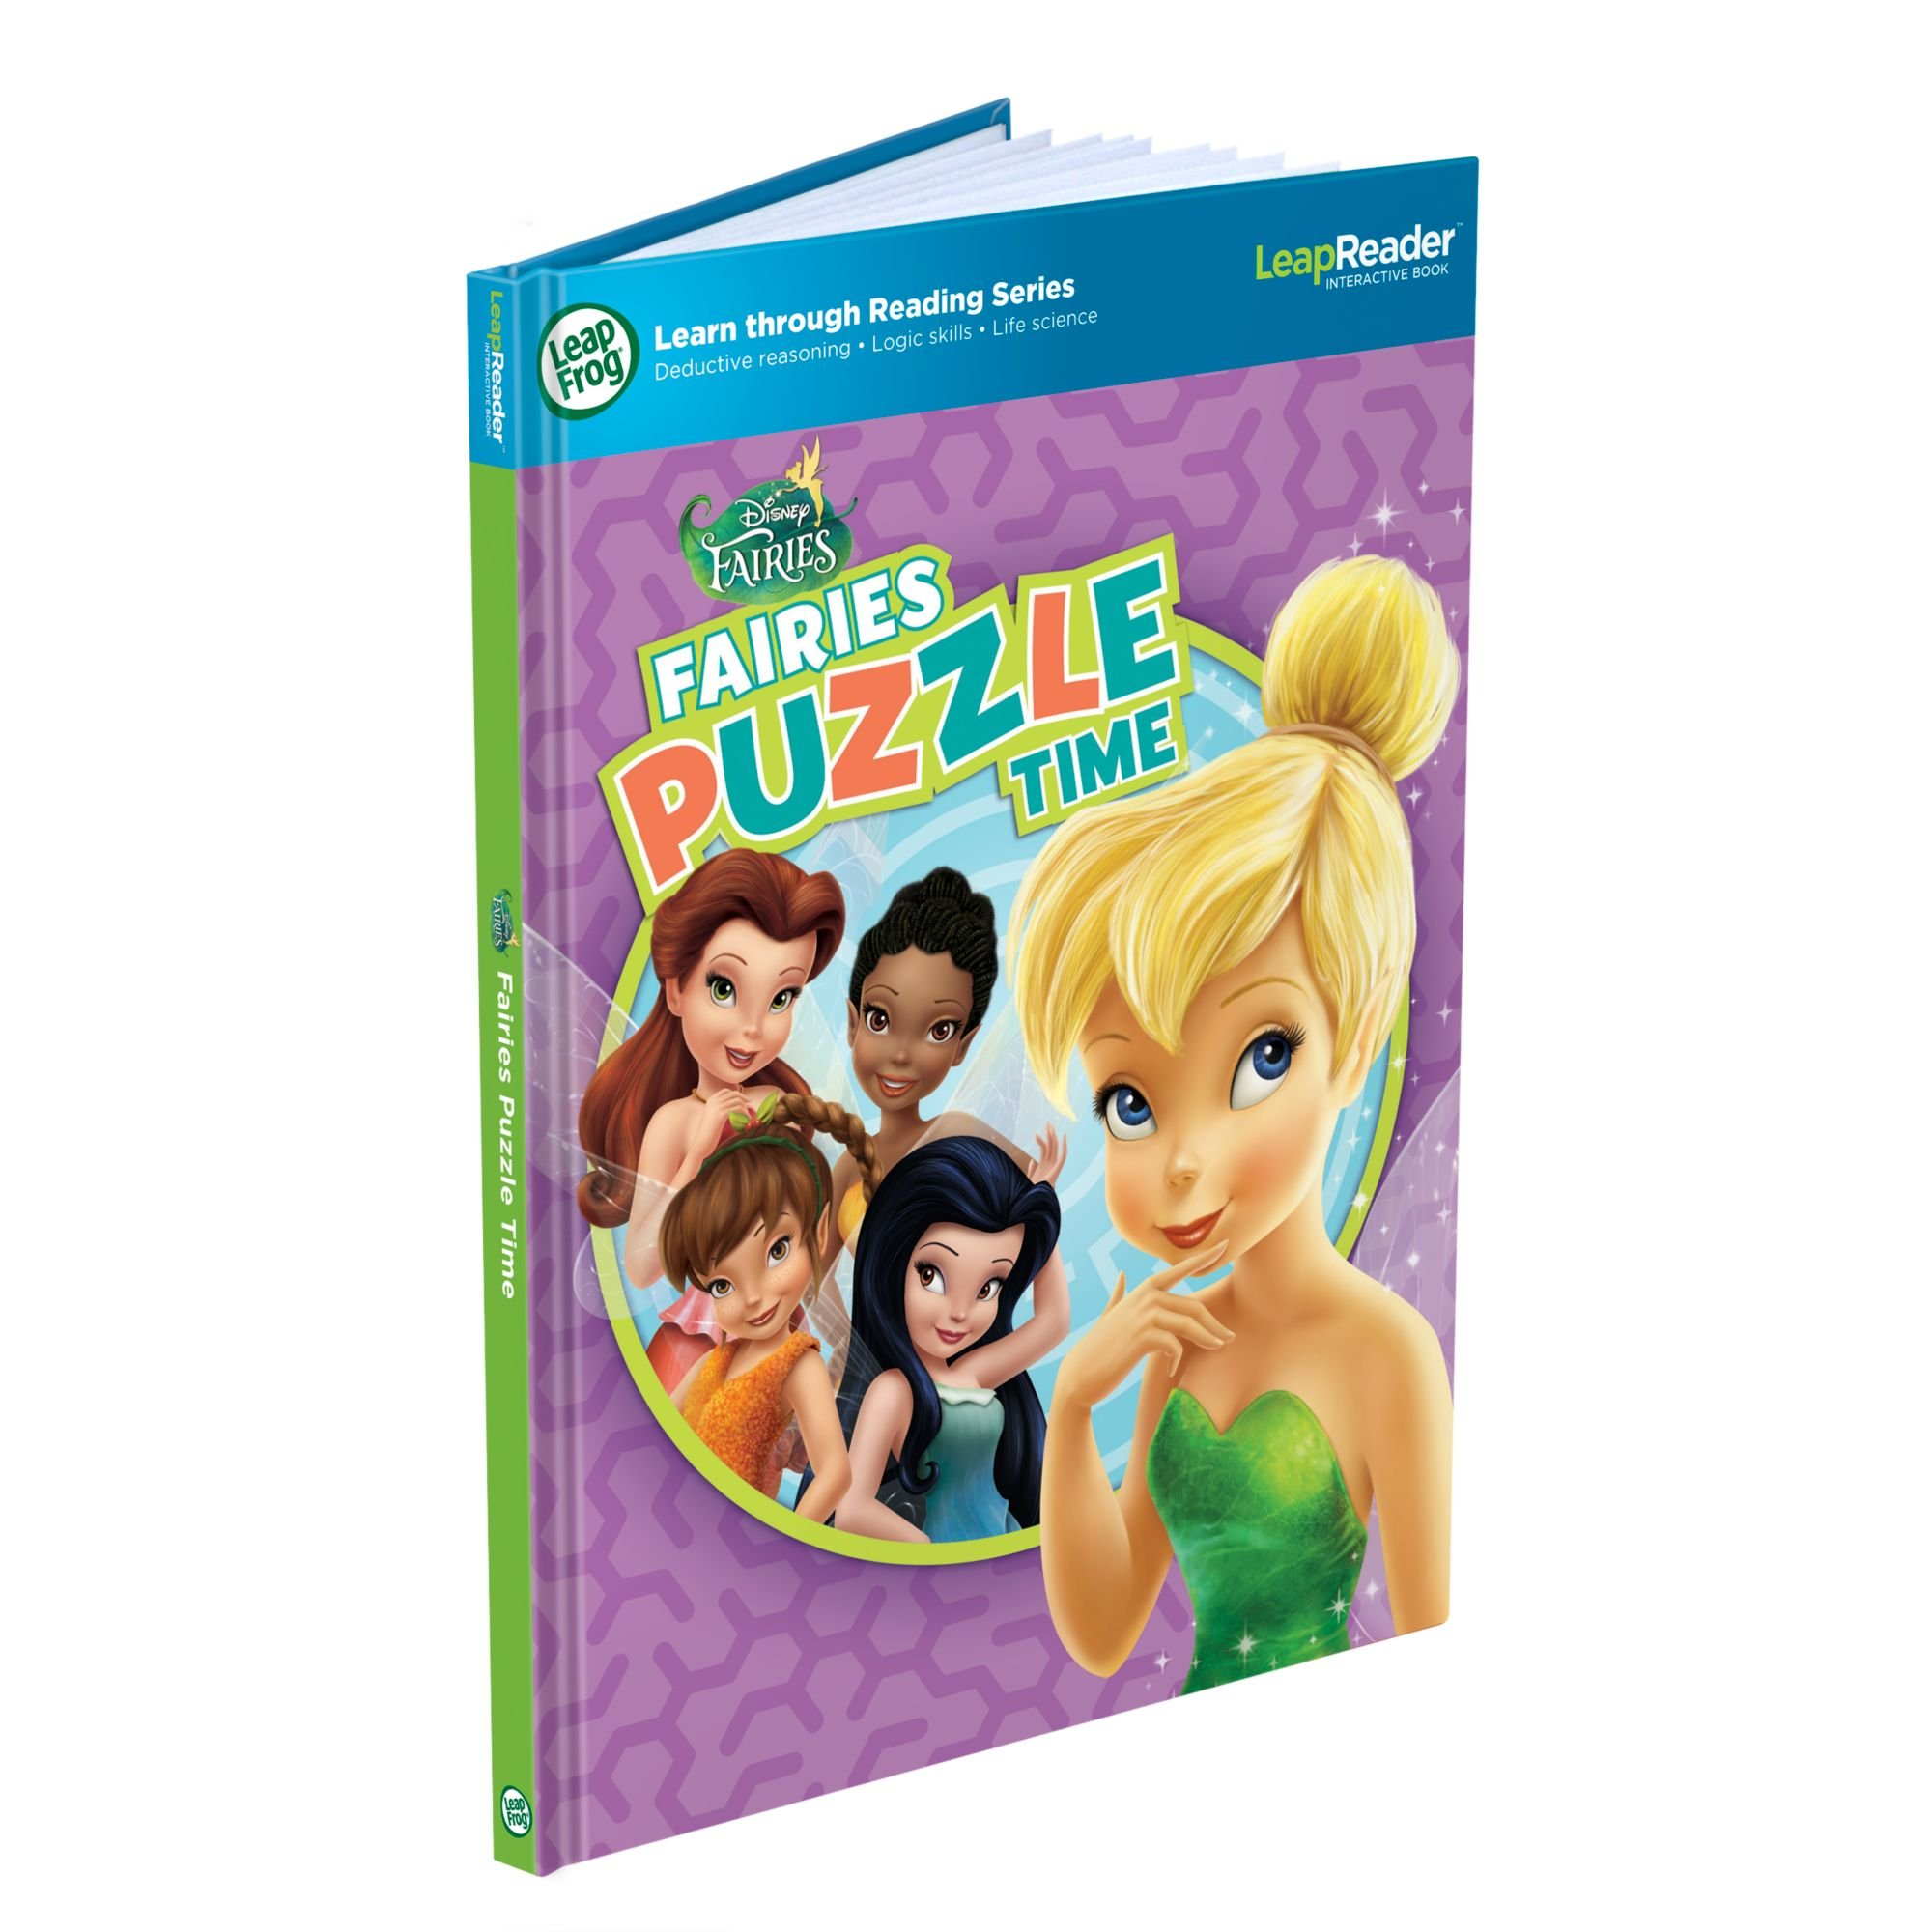 LeapFrog LeapReader Book: Disney Fairies Puzzle Time (works with Tag) by LeapFrog